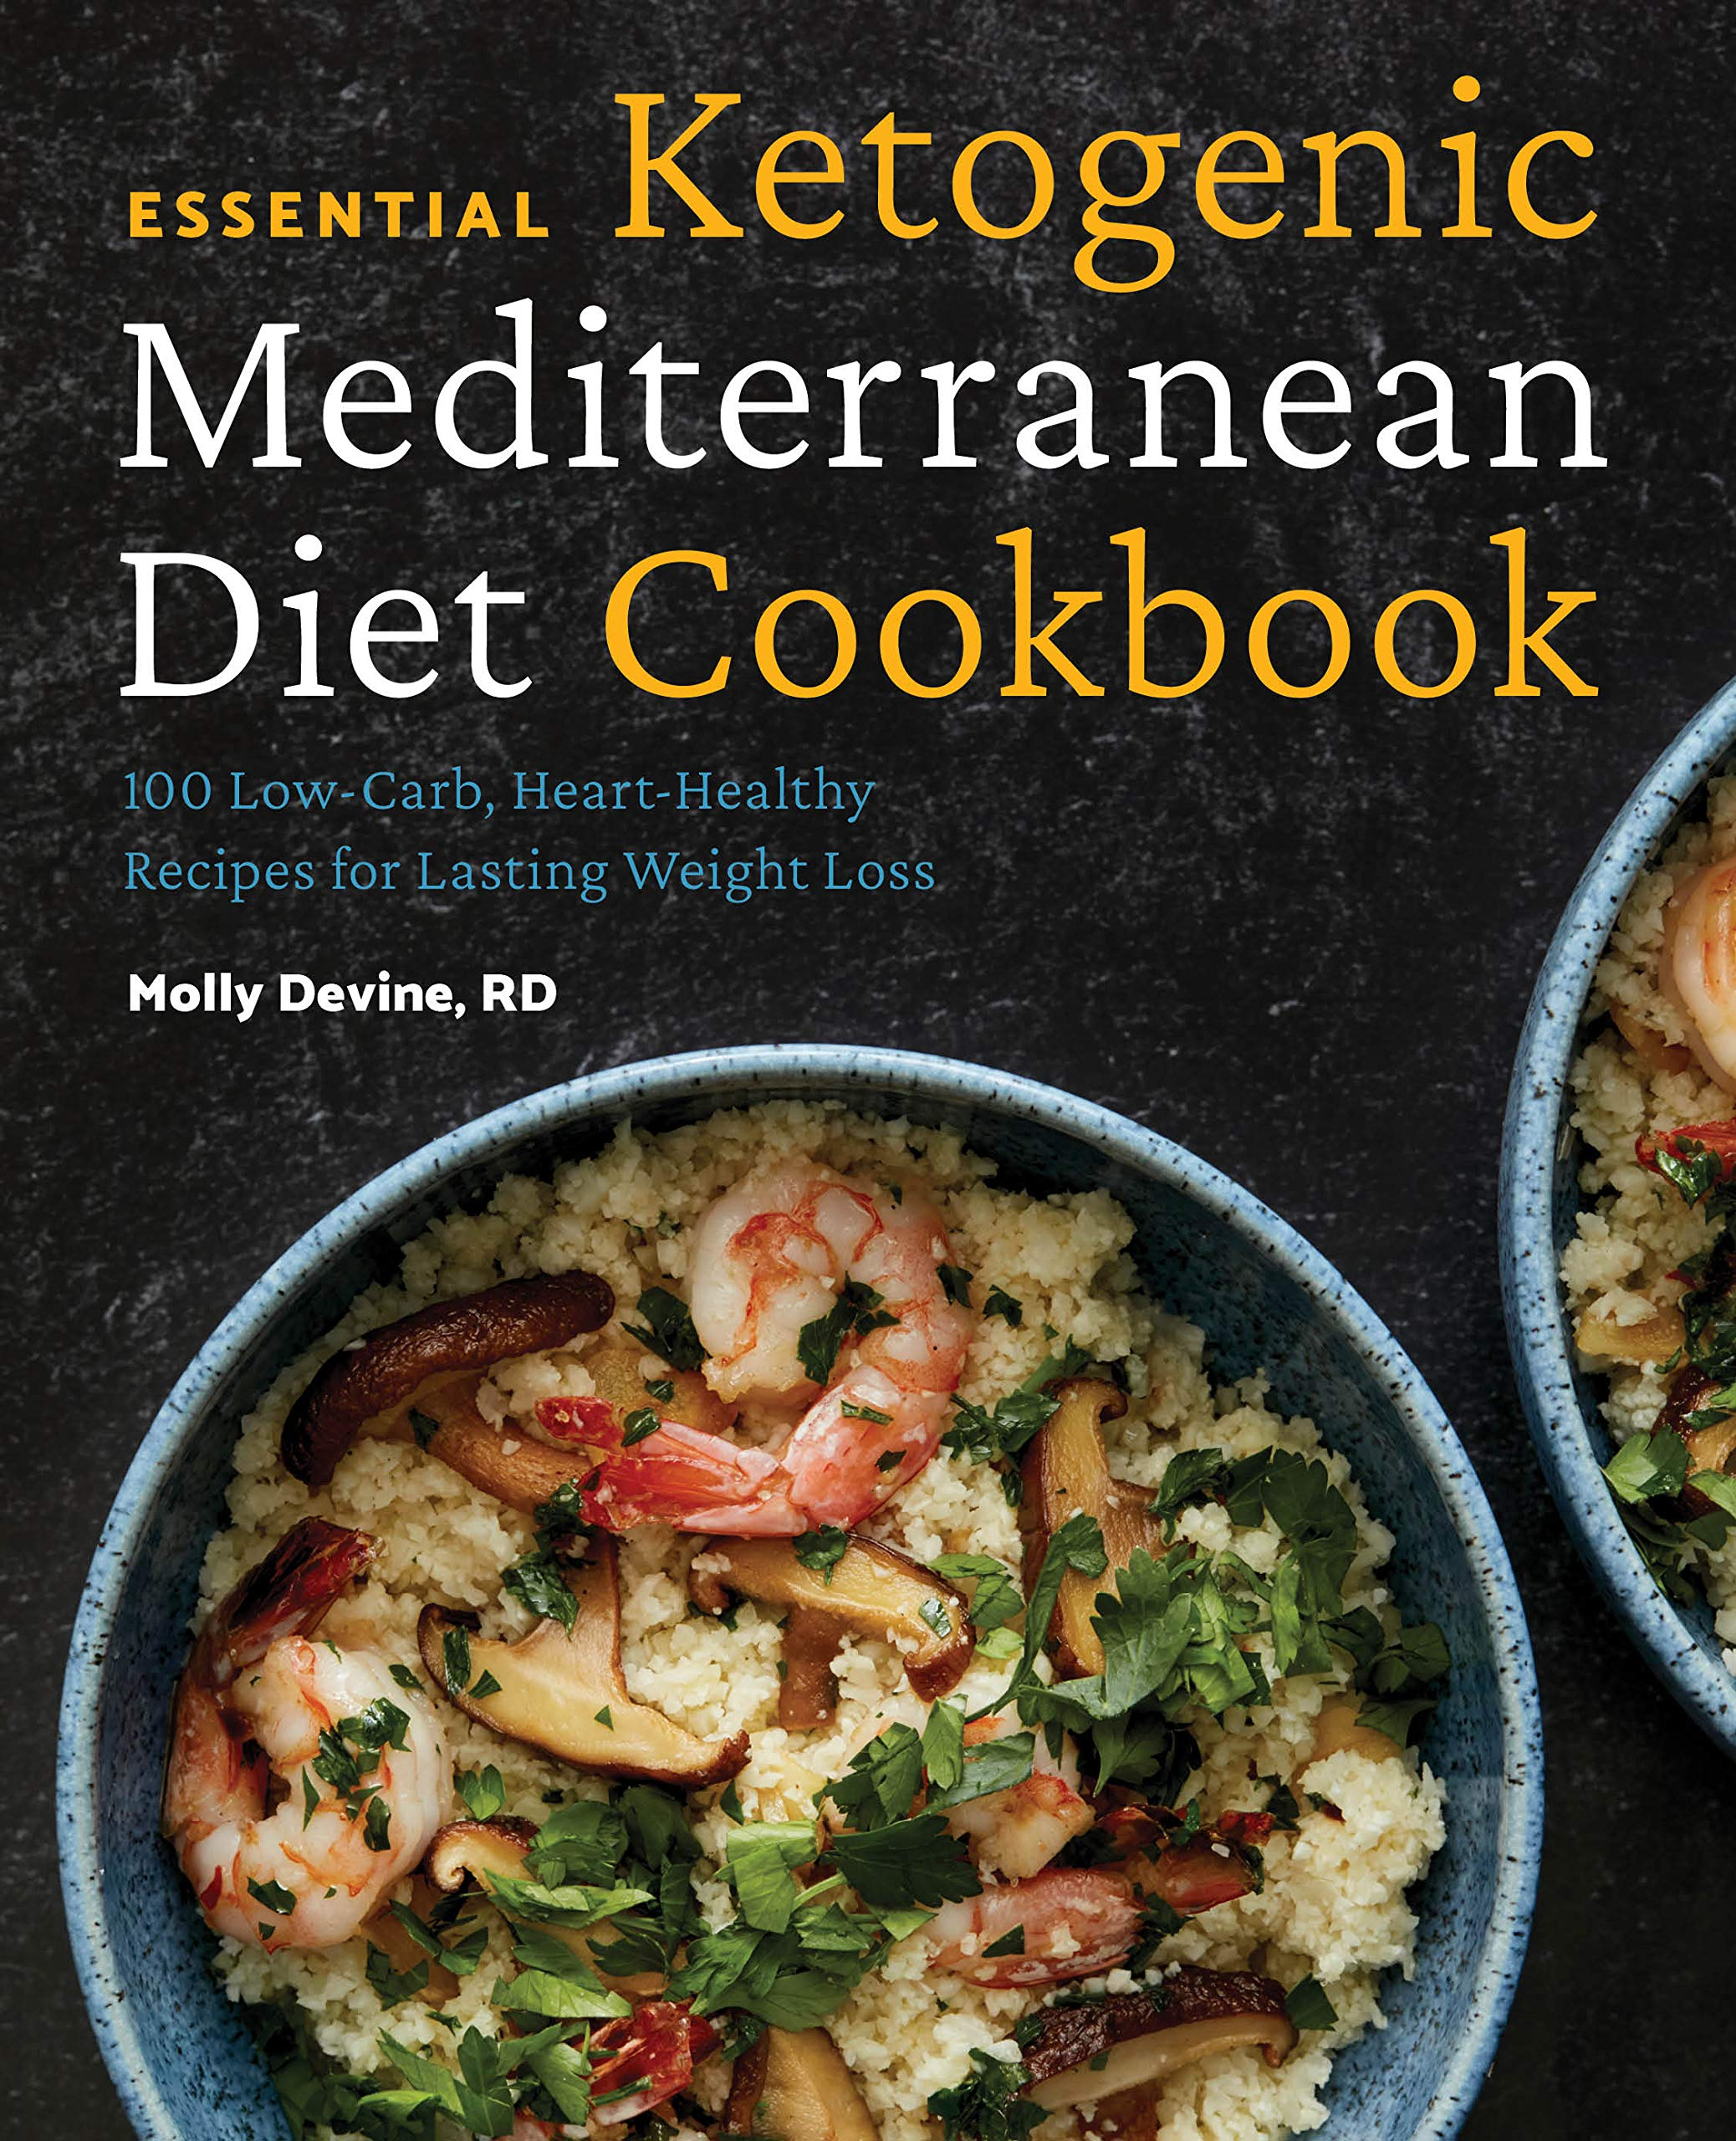 Download Essential Ketogenic Mediterranean Diet Cookbook: 100 Low-Carb, Heart-Healthy Recipes For Lasting Weight Loss 